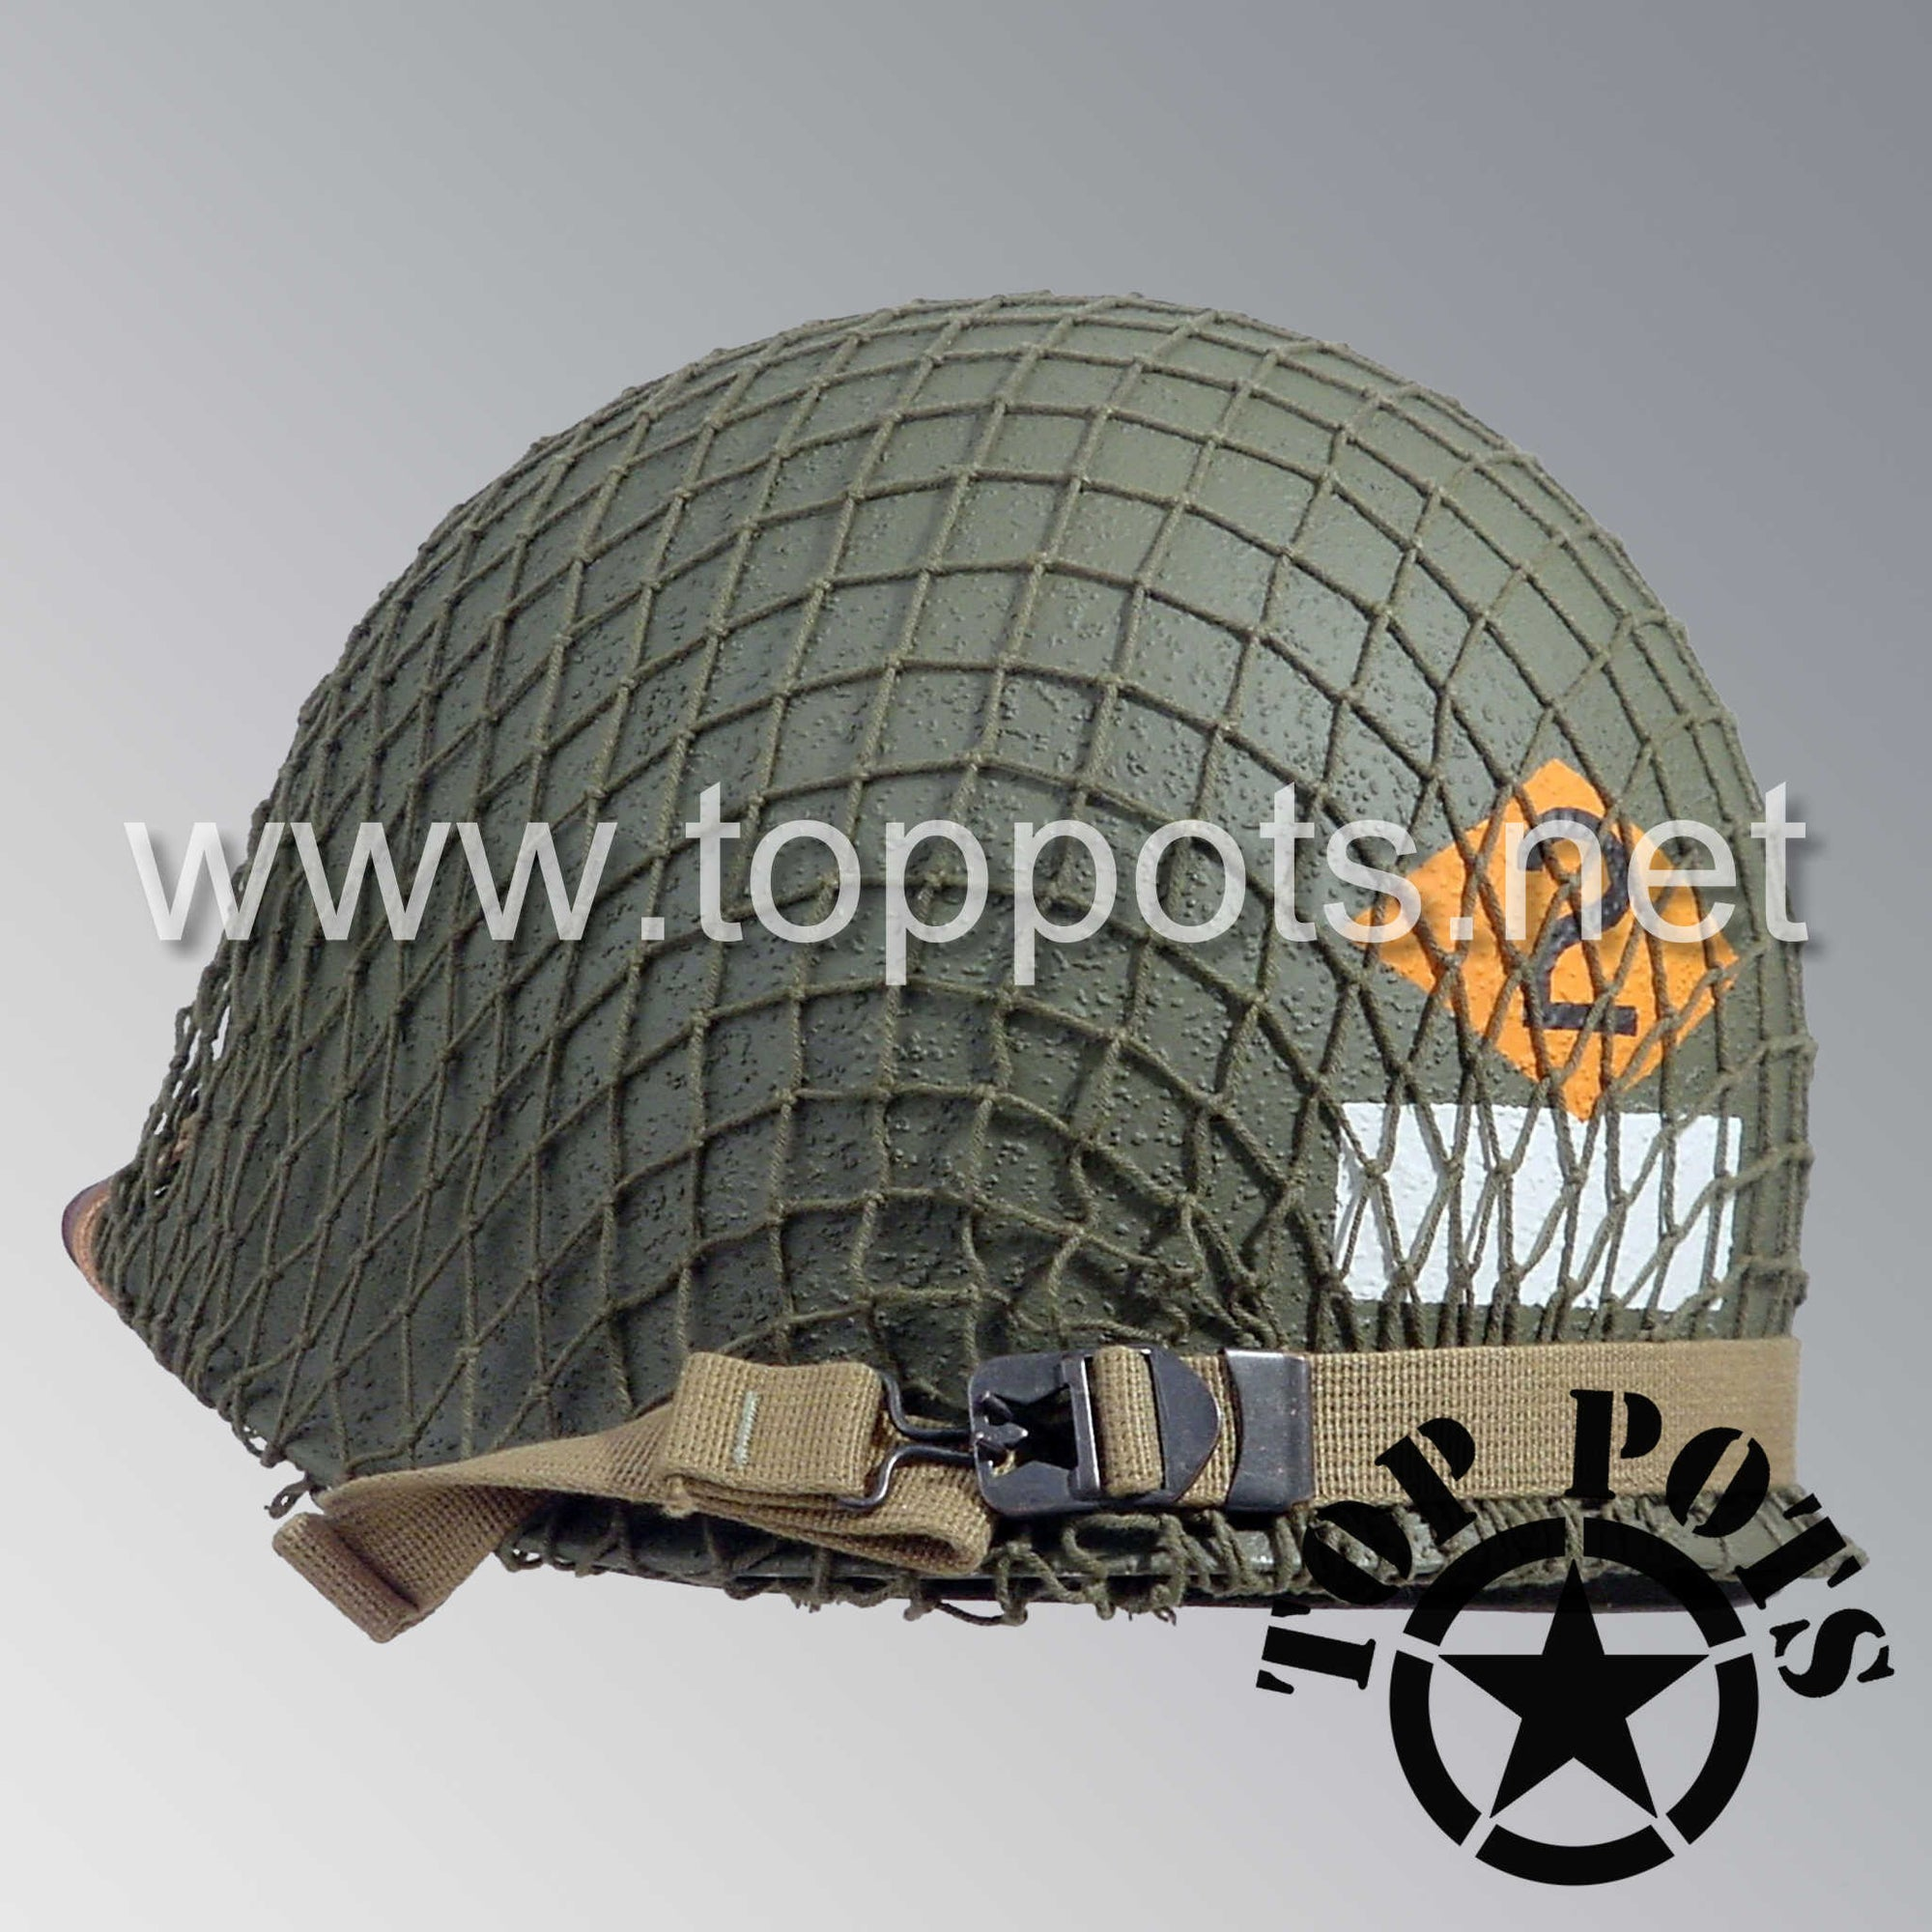 Image 5 of WWII US Army Restored Original M1 Infantry Helmet Swivel Bale Shell and Liner with 2nd Ranger NCO Emblem and OD 7 Net